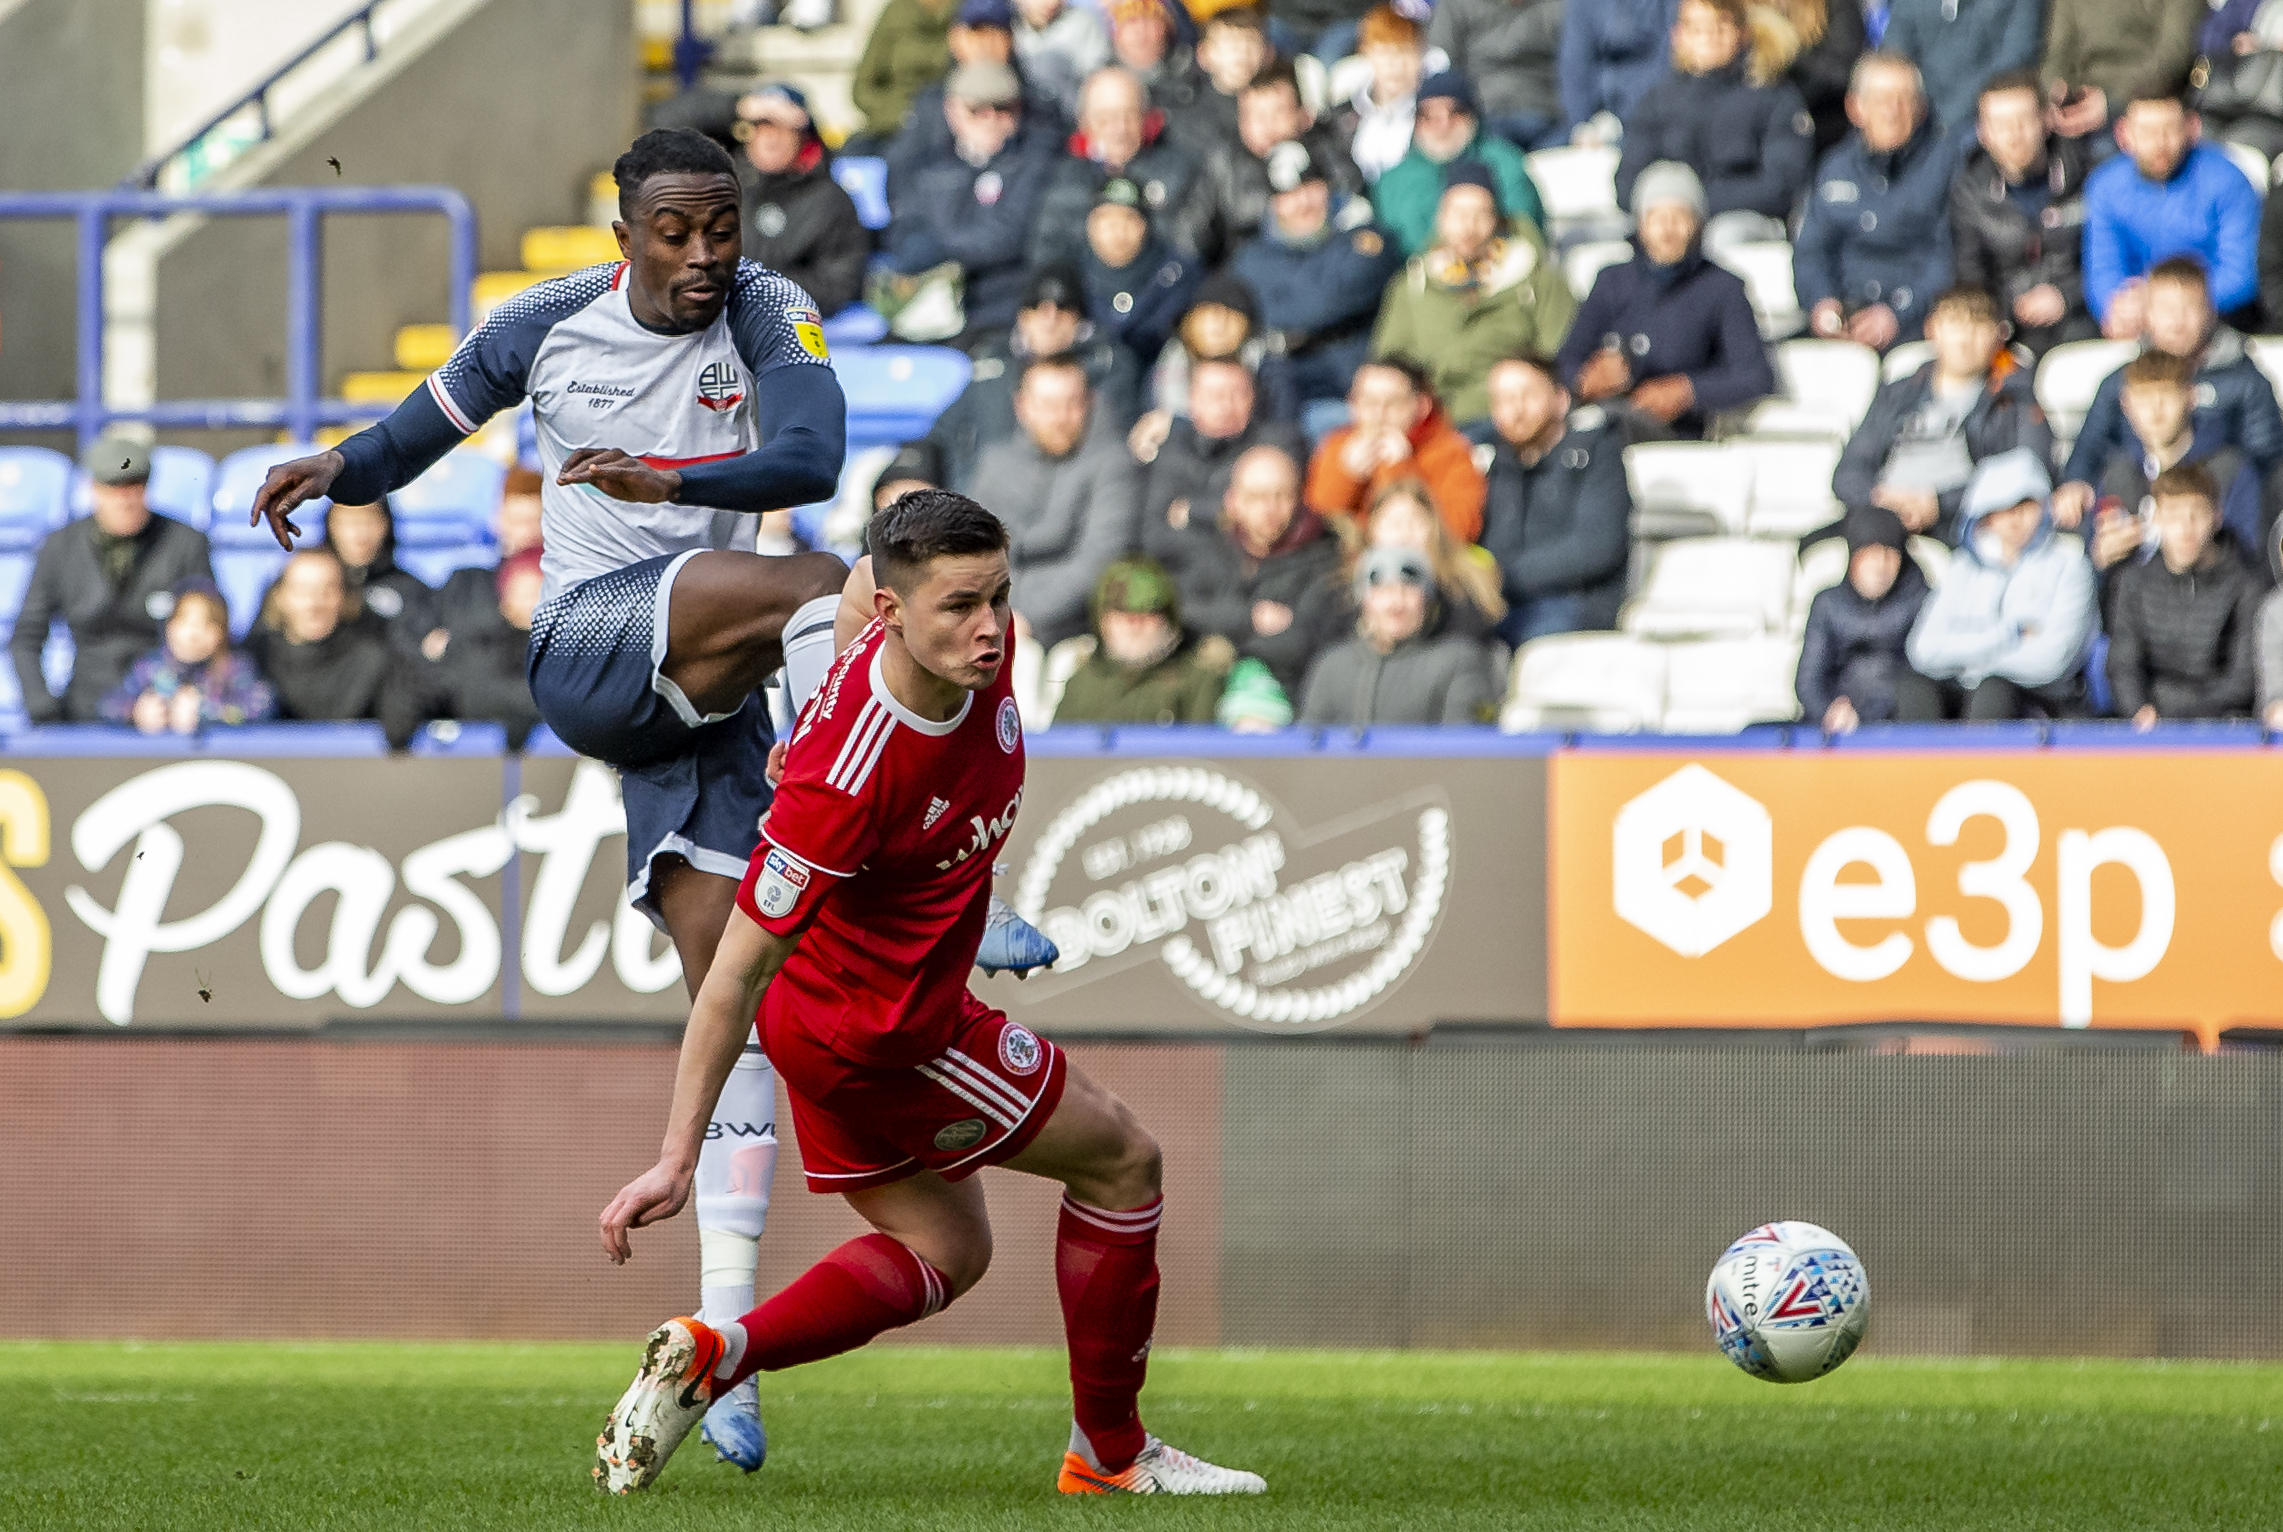 Bolton Wanderers v Accrington Stanley - Sky Bet League One